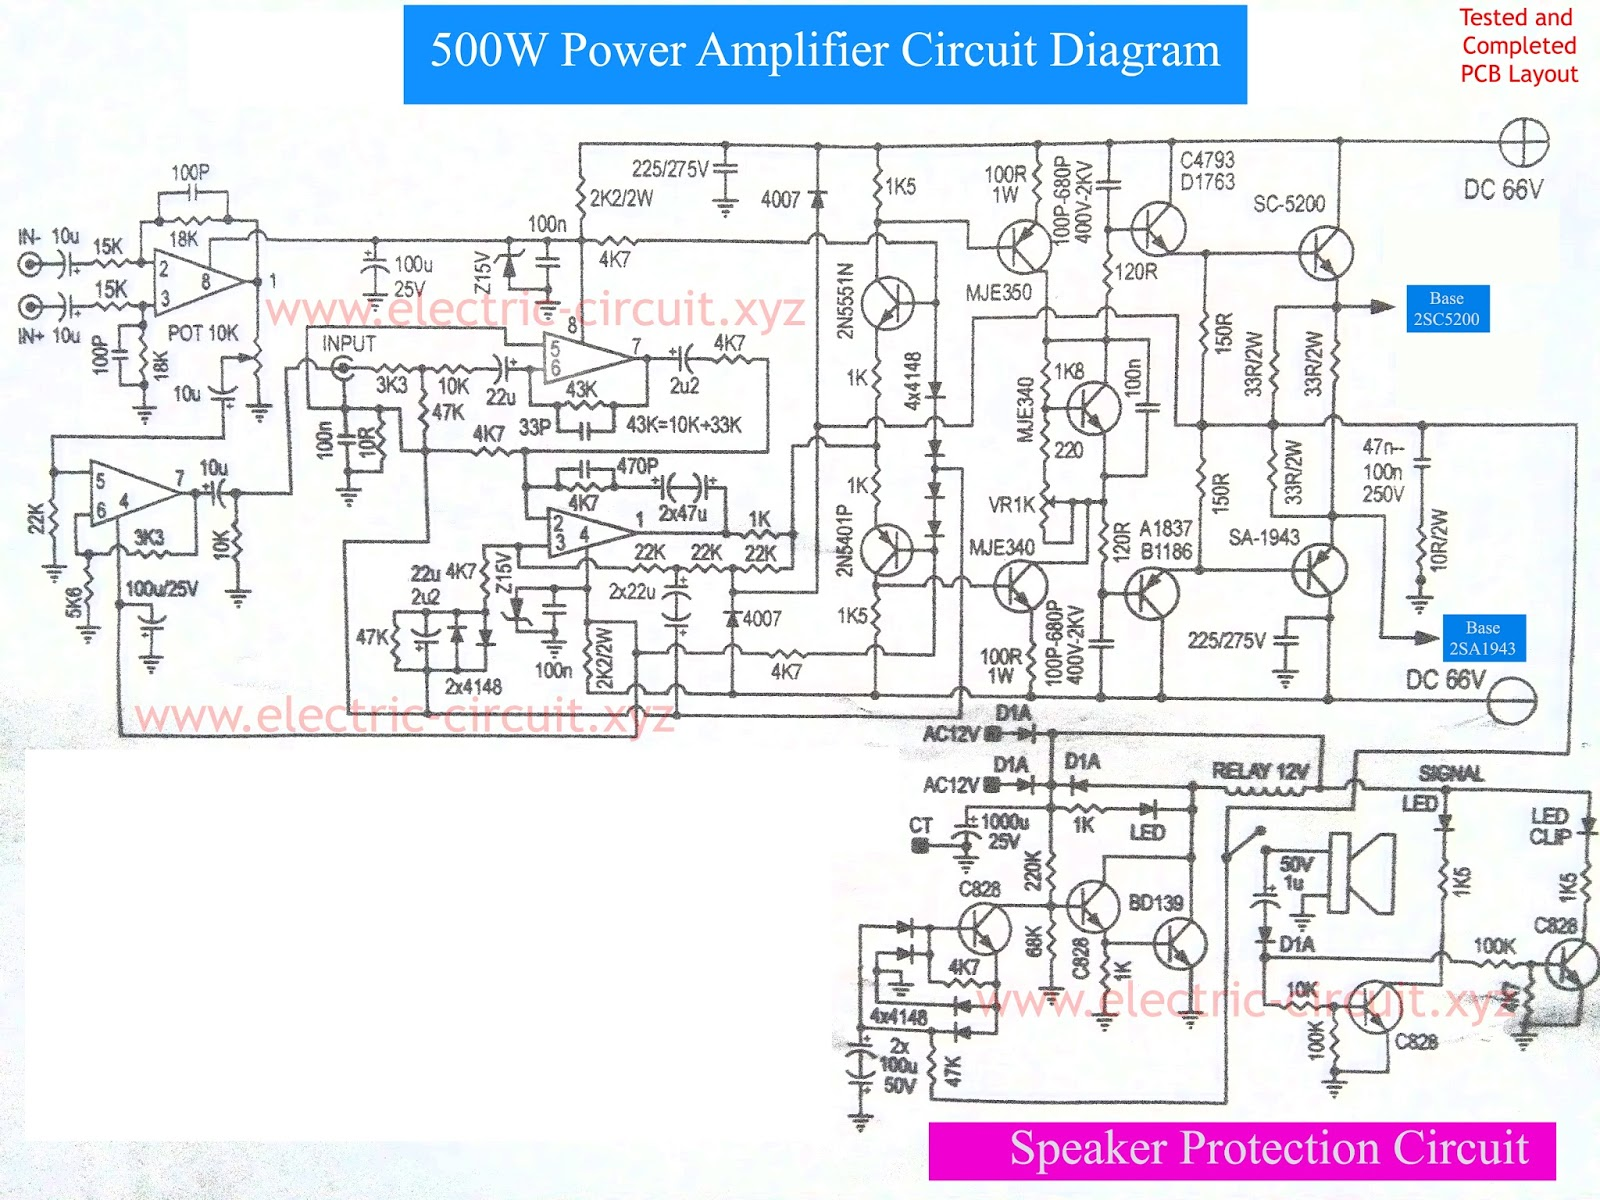 2000w Power Amplifier Circuit Diagram 2010 Accord Fuse Box 300w With 2n773 Schematic Diagrams Wiring Library